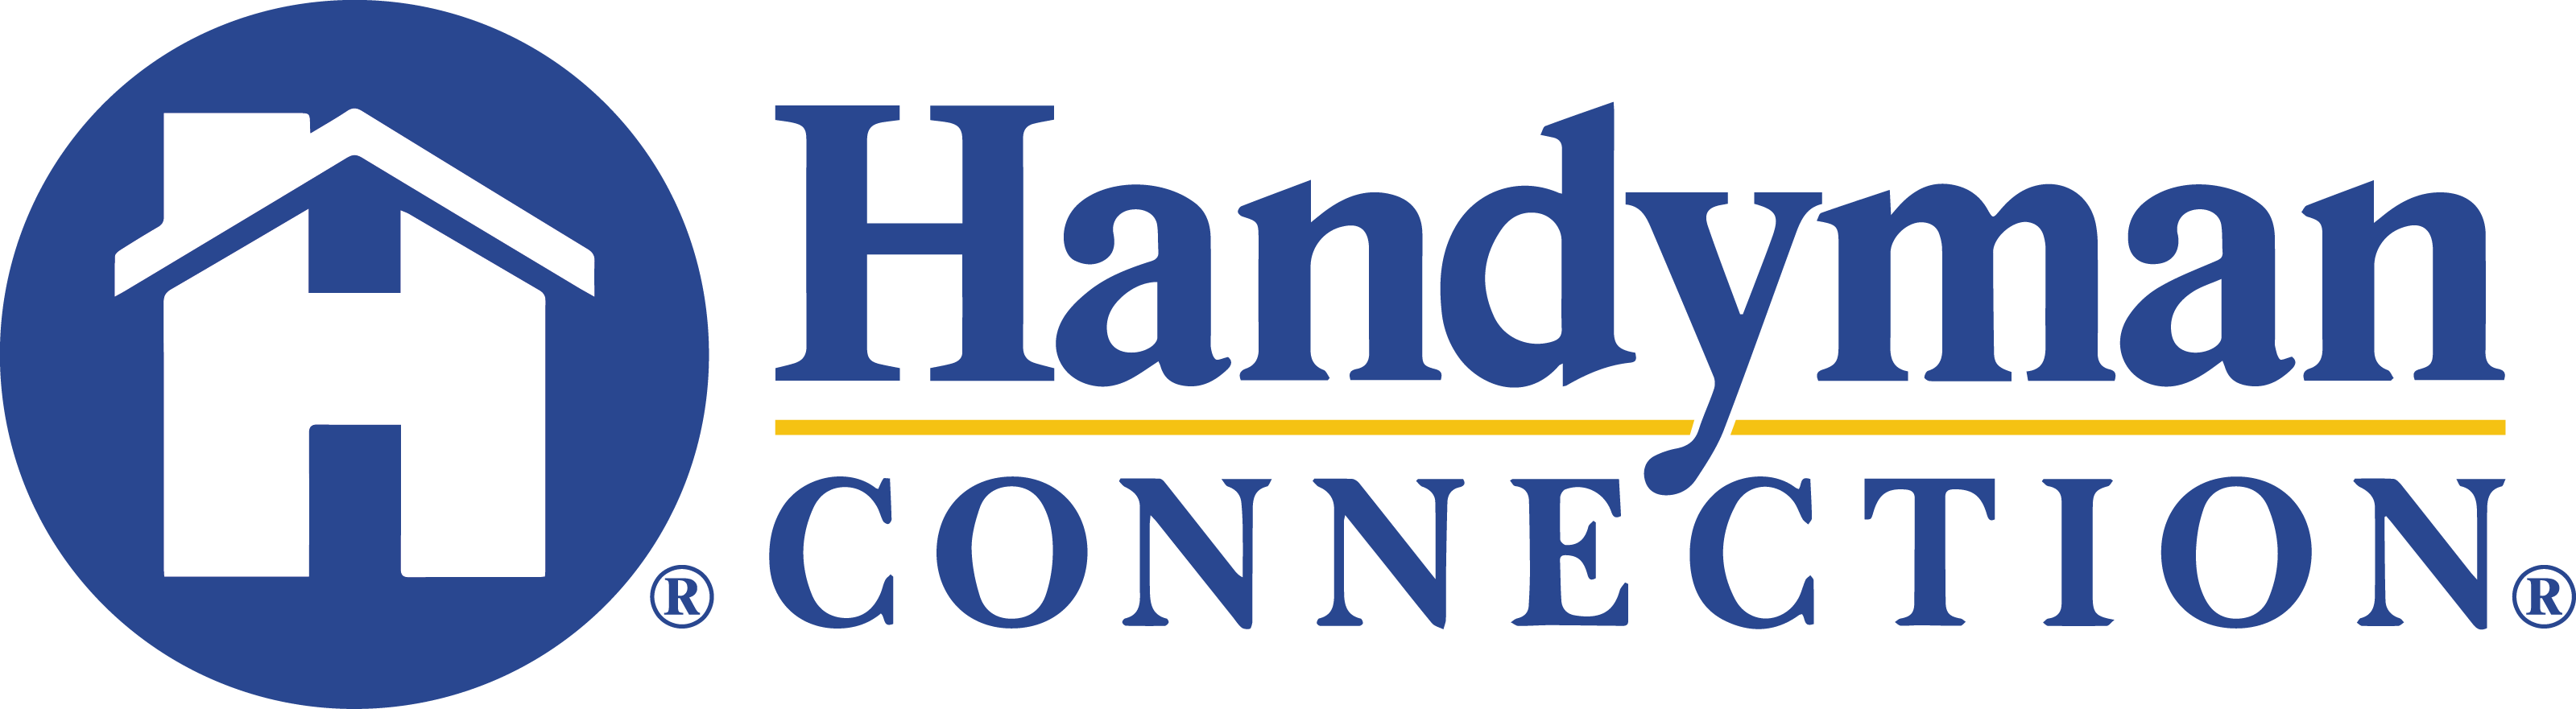 Handyman Connection of Scarborough, ON